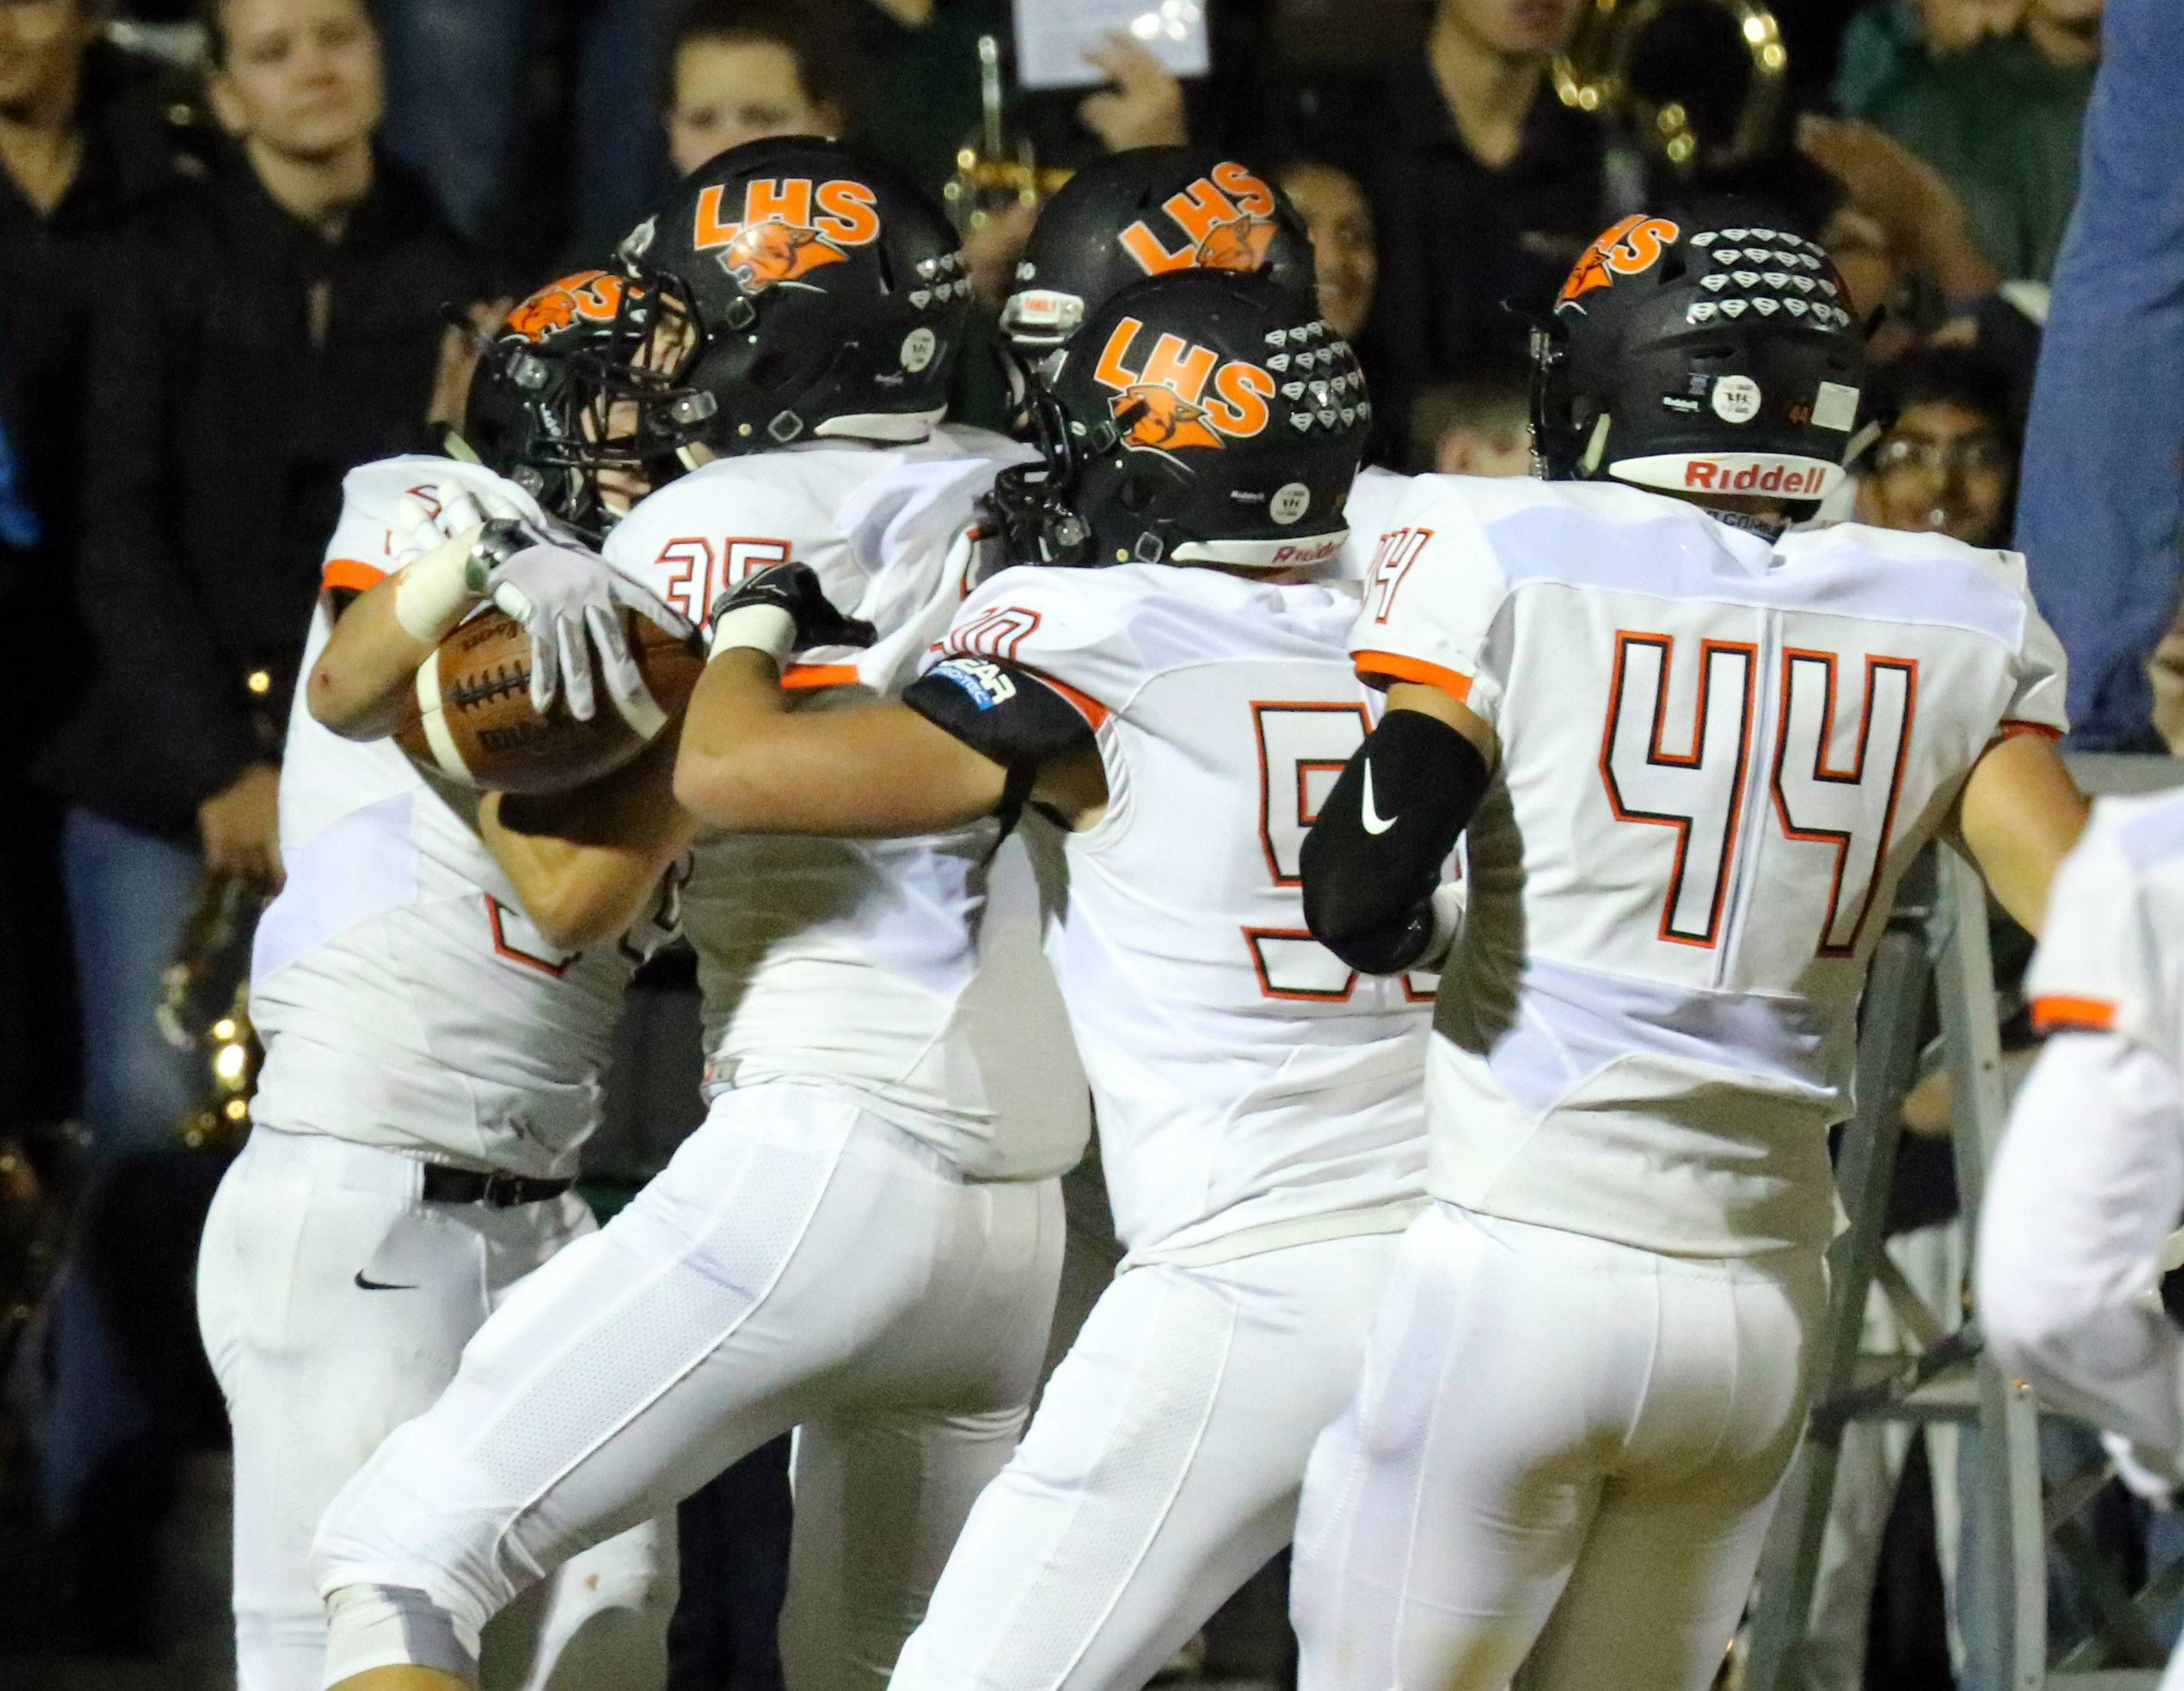 Libertyville's Brendan Bazar, left, is mobbed by teammates after a kickoff return for a touchdown on Friday night at Stevenson.